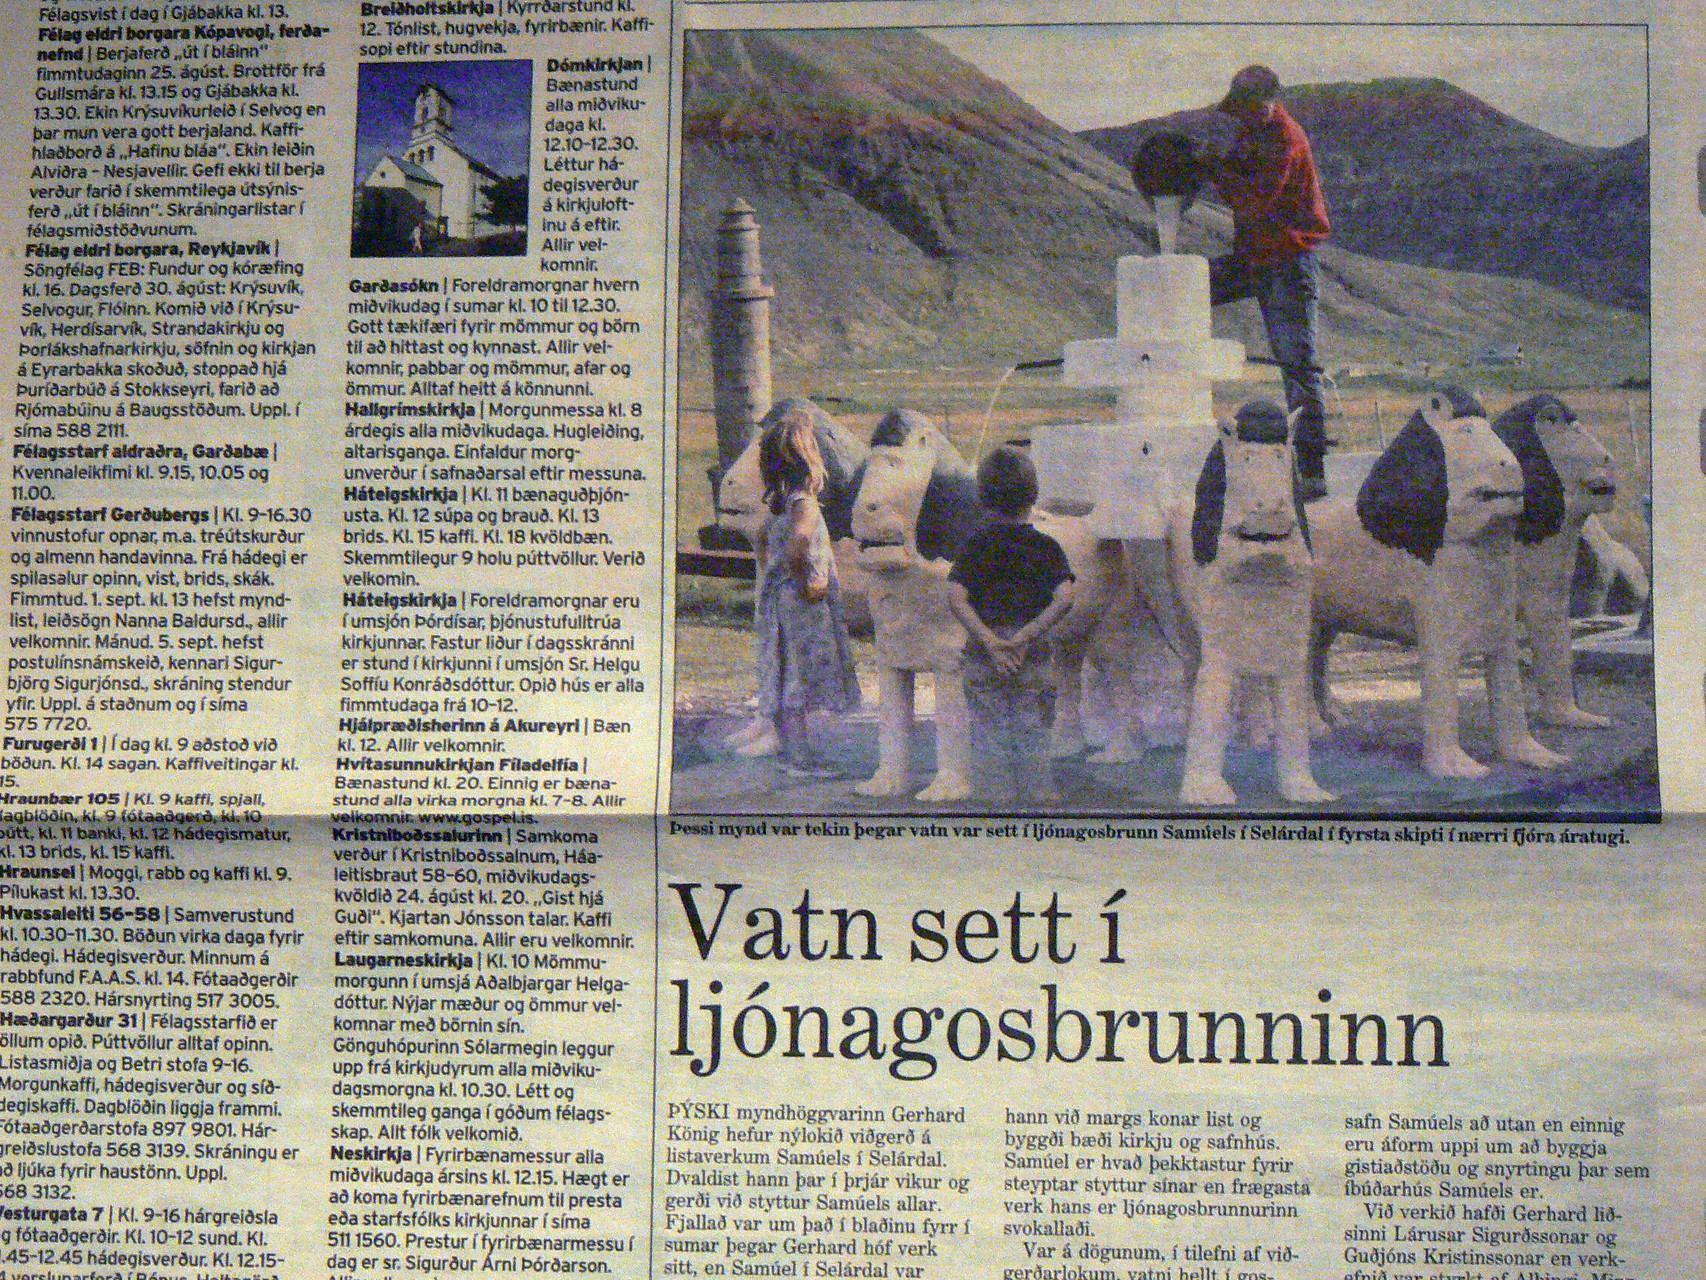 Article in DV og Mbl 24.8. 2005. The first water run with Gerhard König.